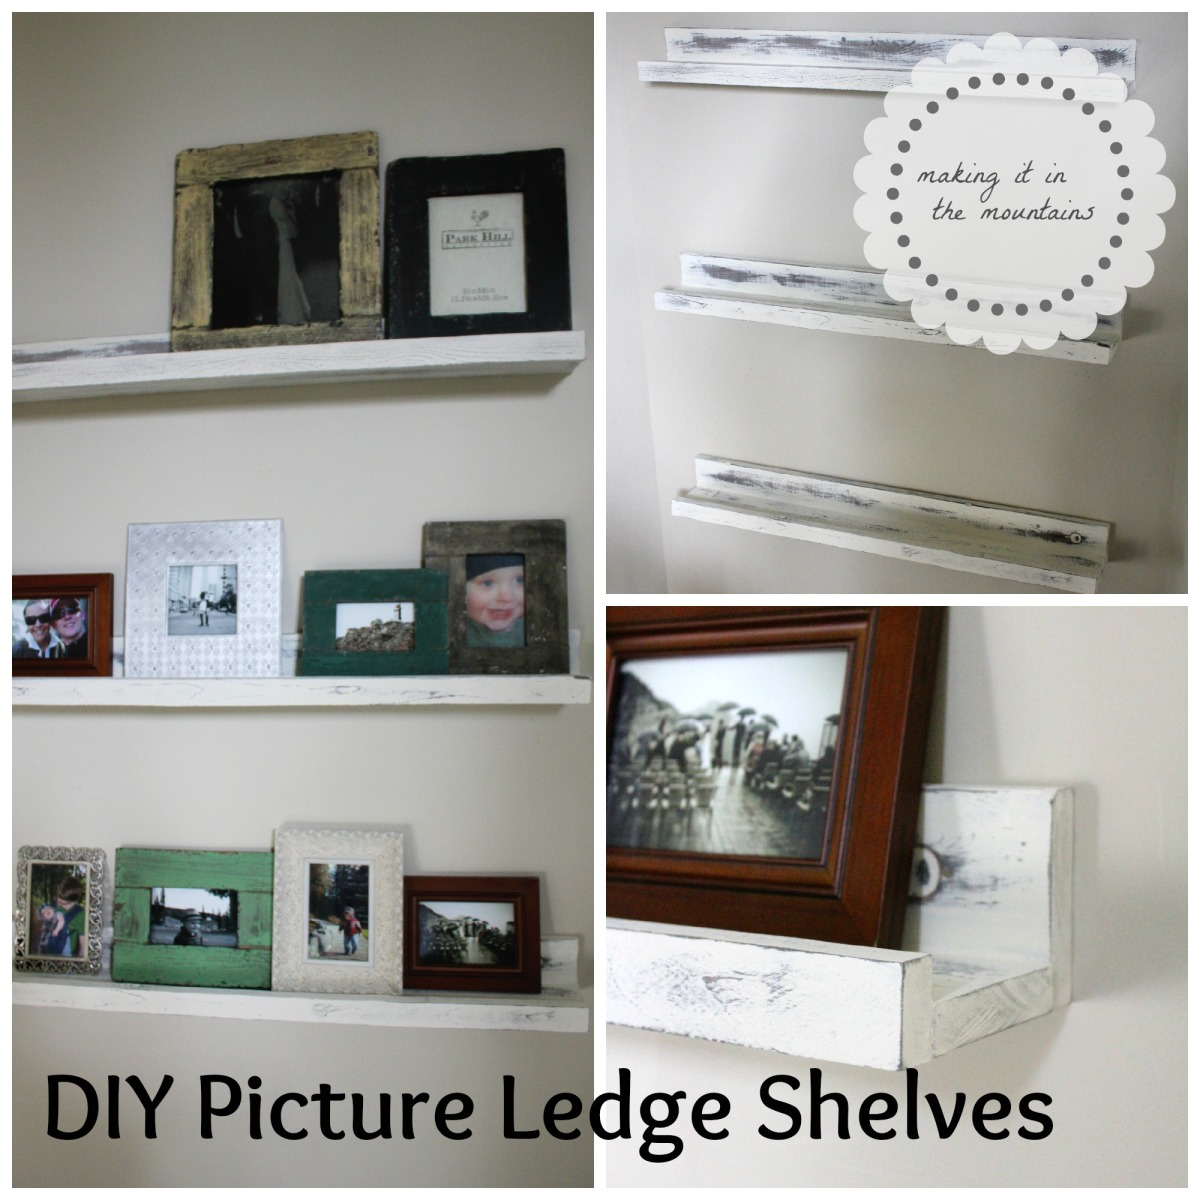 DIY Pottery Barn Picture Ledge Shelves